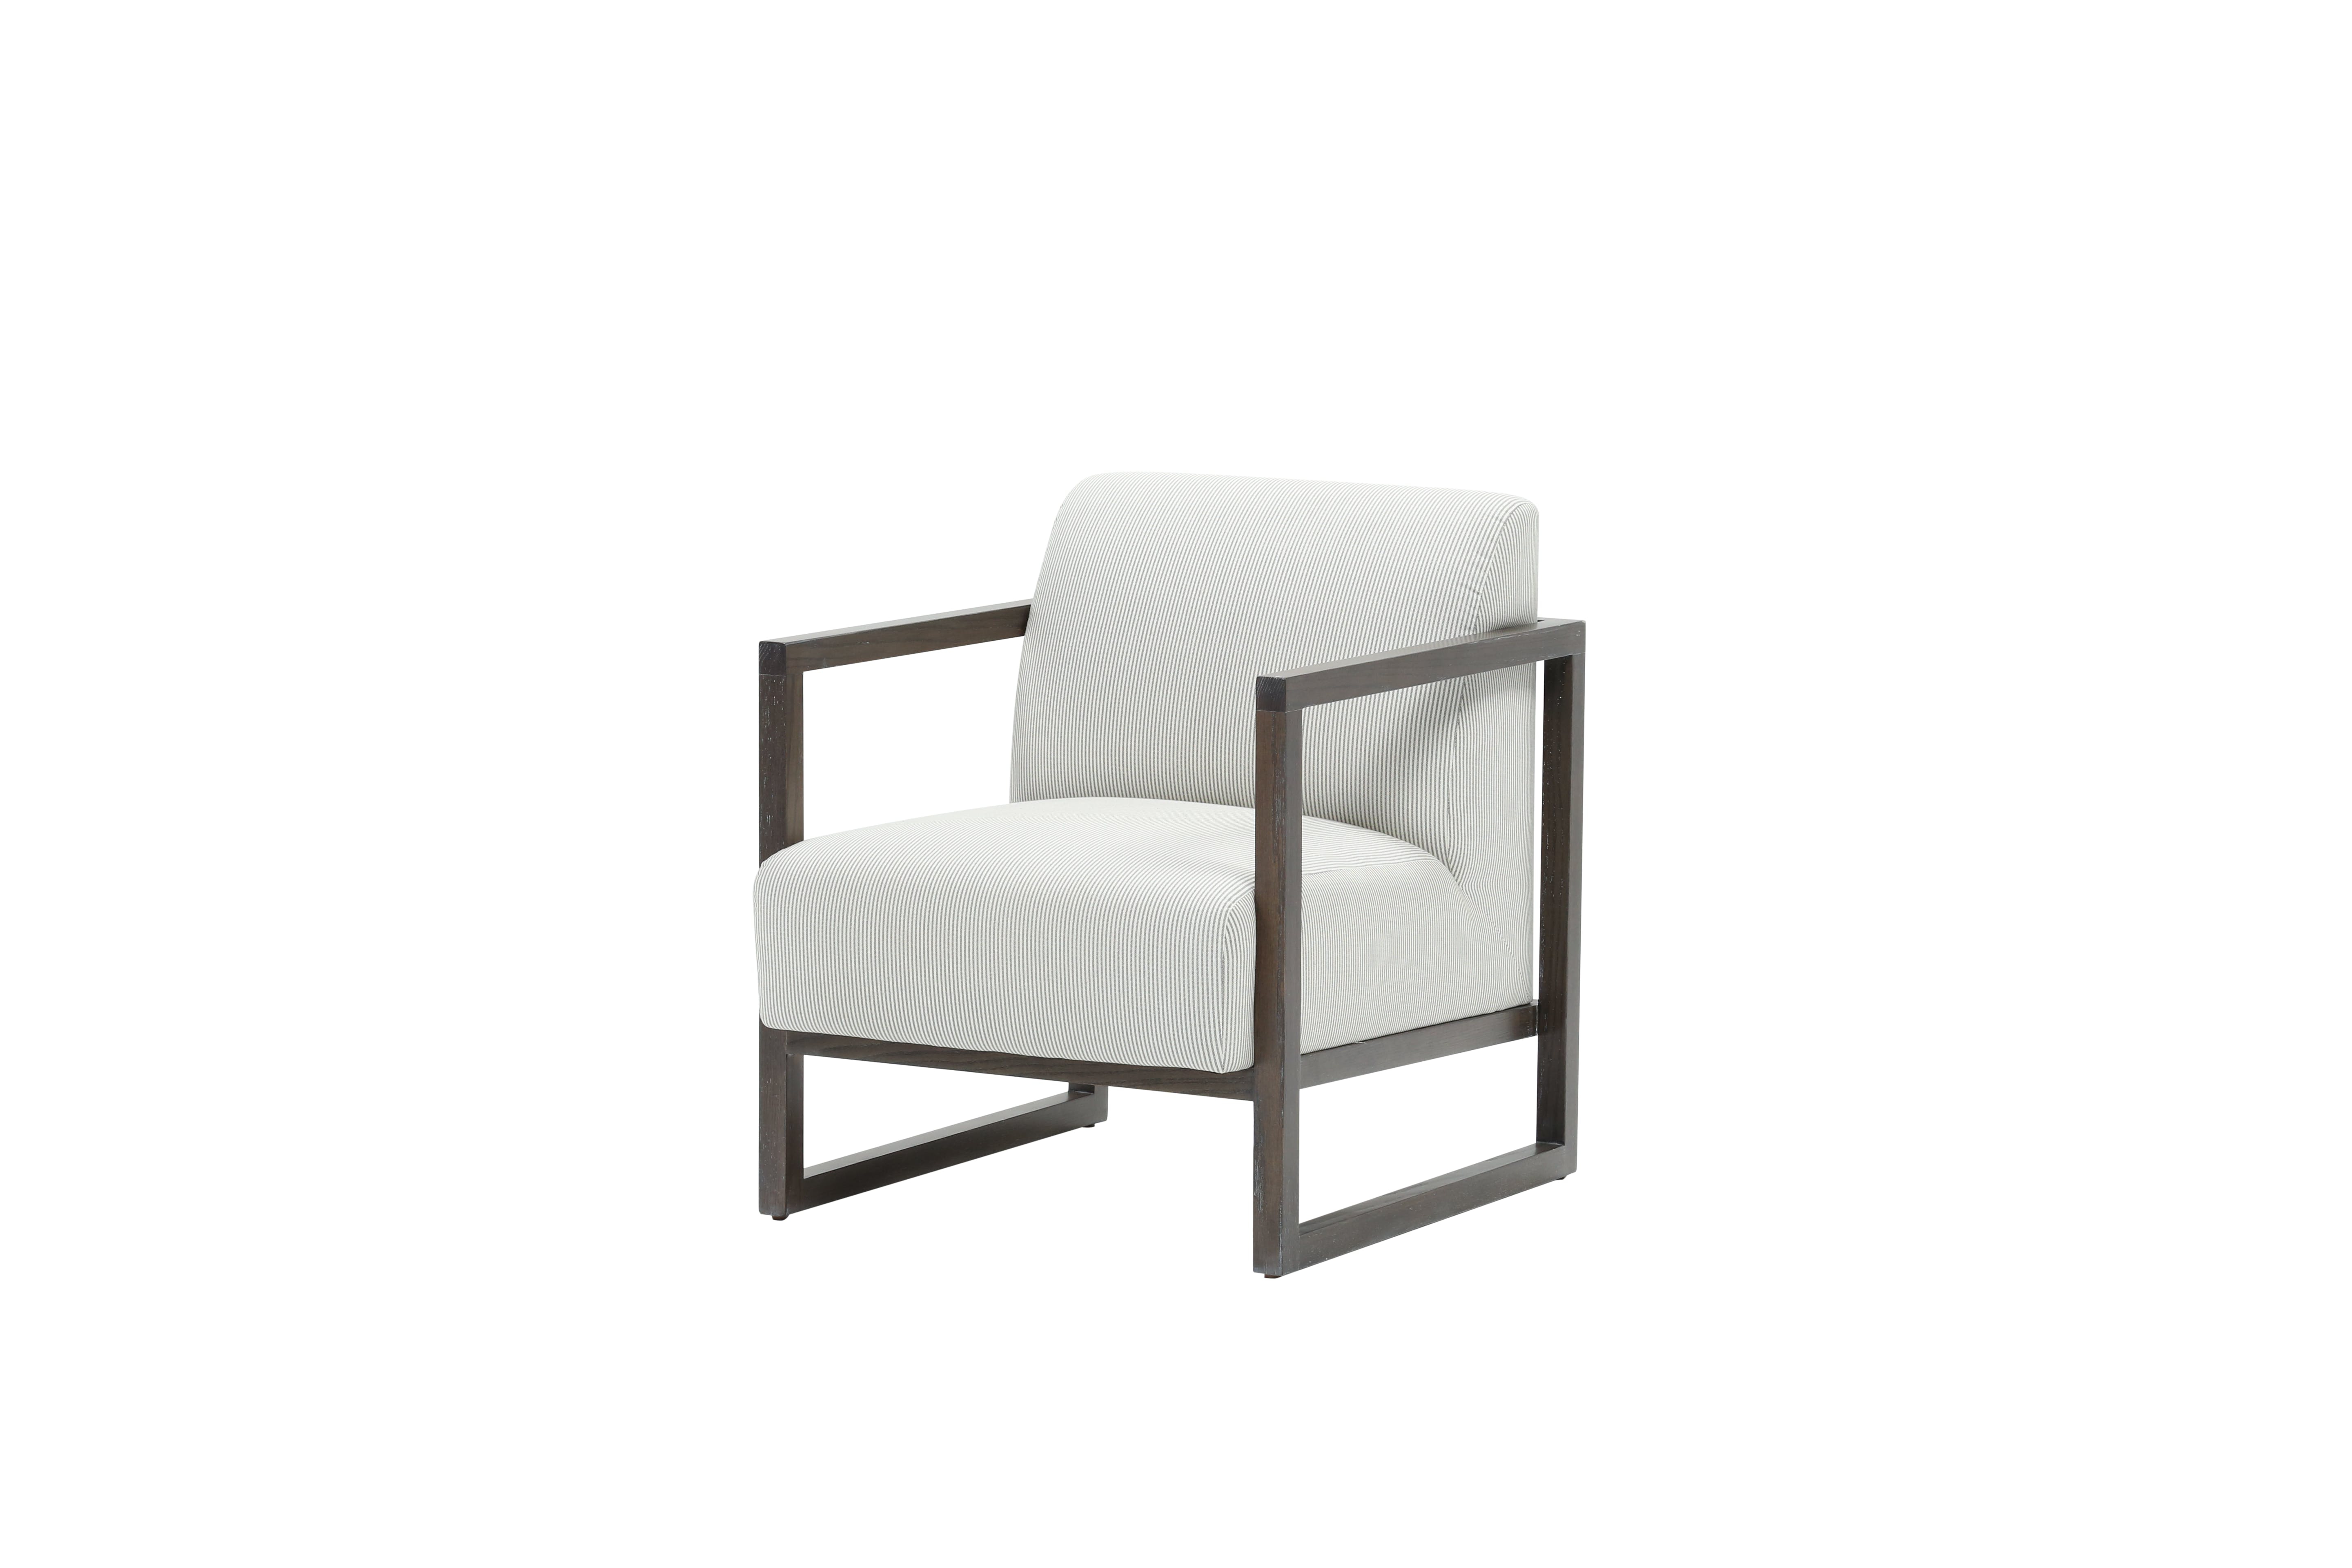 Matteo Arm Sofa Chairs By Nate Berkus And Jeremiah Brent Pertaining To Most Current Nate Berkus Just Launched A Home Collection With Hubby Jeremiah (Gallery 18 of 20)